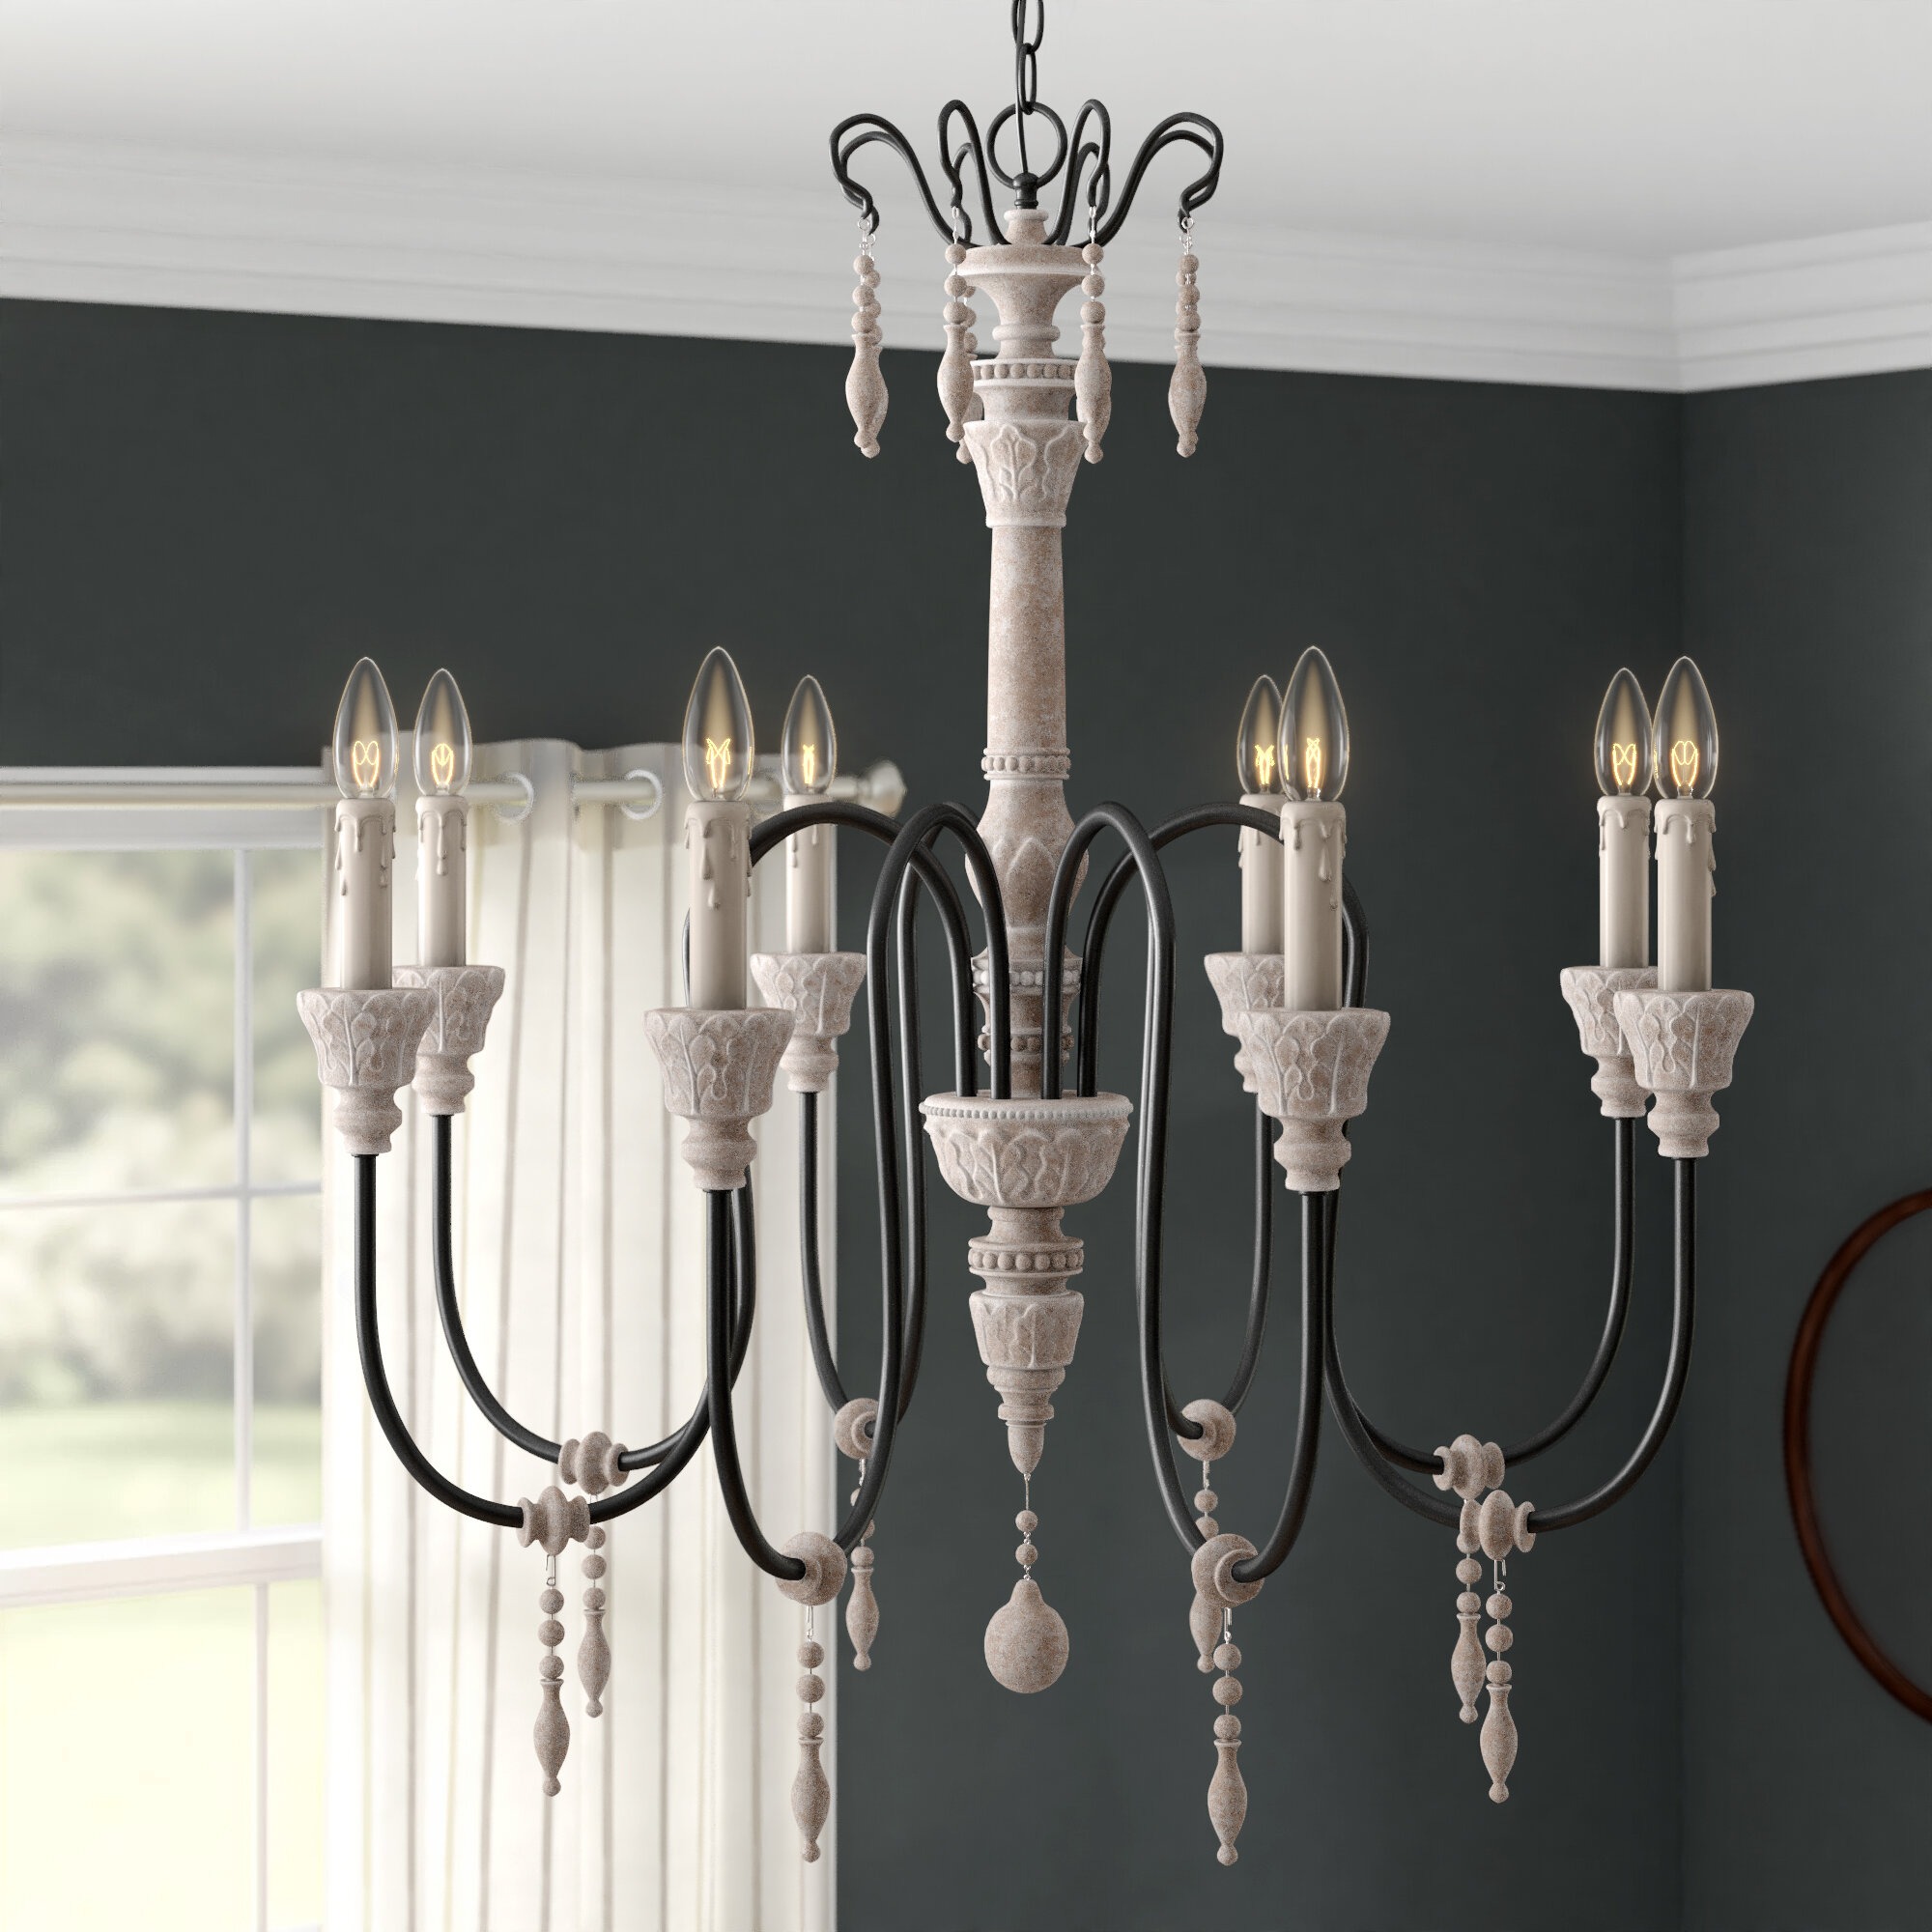 Ailsa 8 Light Candle Style Chandelier With Bouchette Traditional 6 Light Candle Style Chandeliers (View 7 of 30)